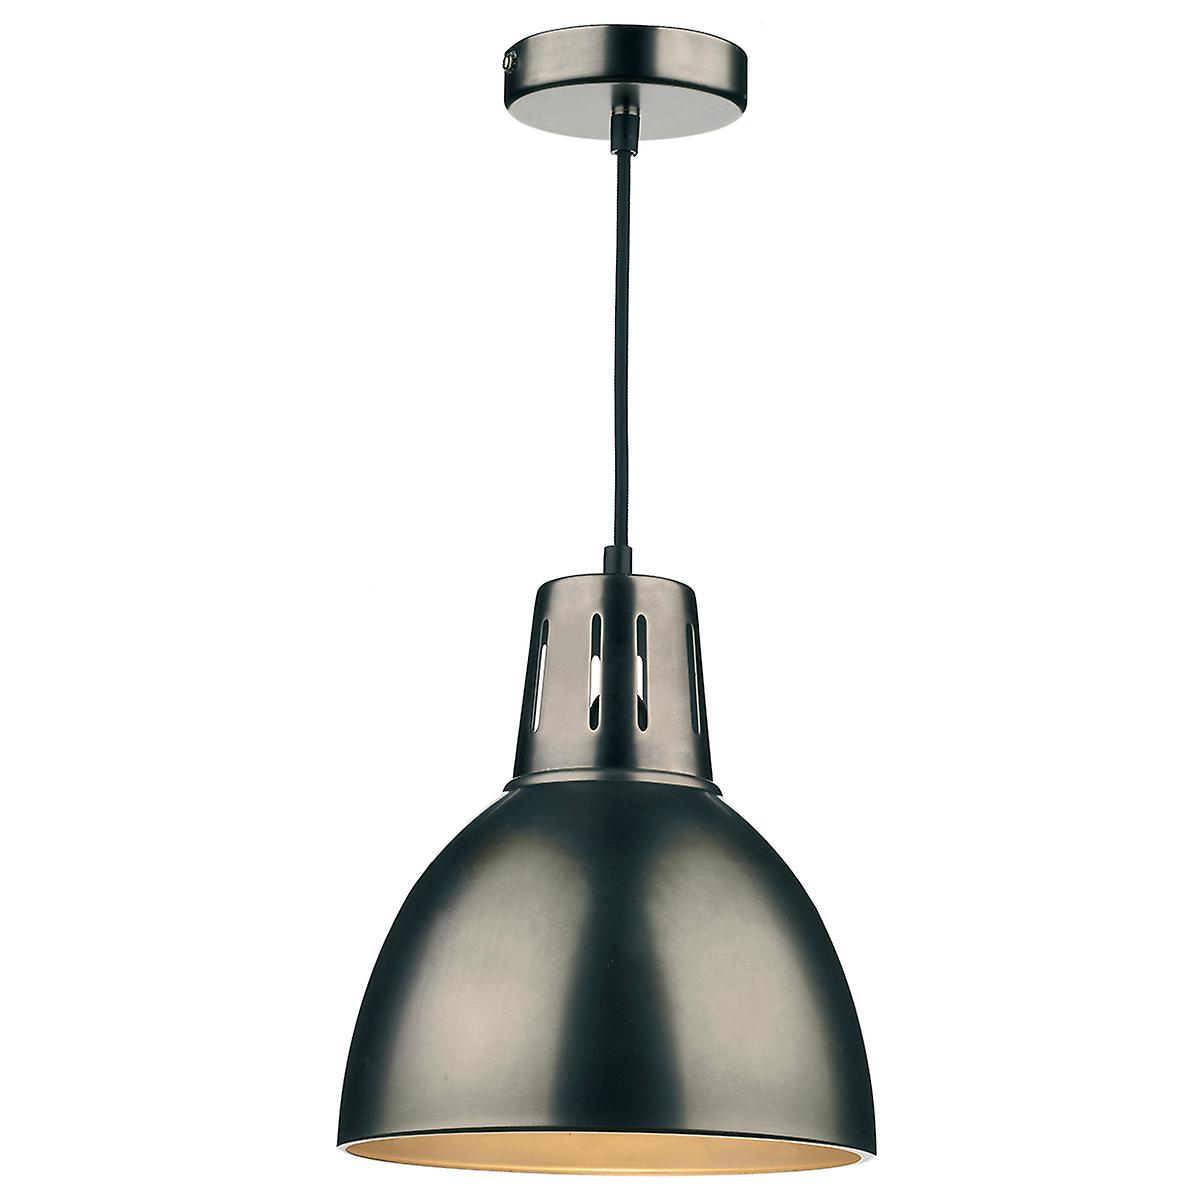 Dar OSA8661 Osaka Large Non Electric Pendant In Antique Chrome